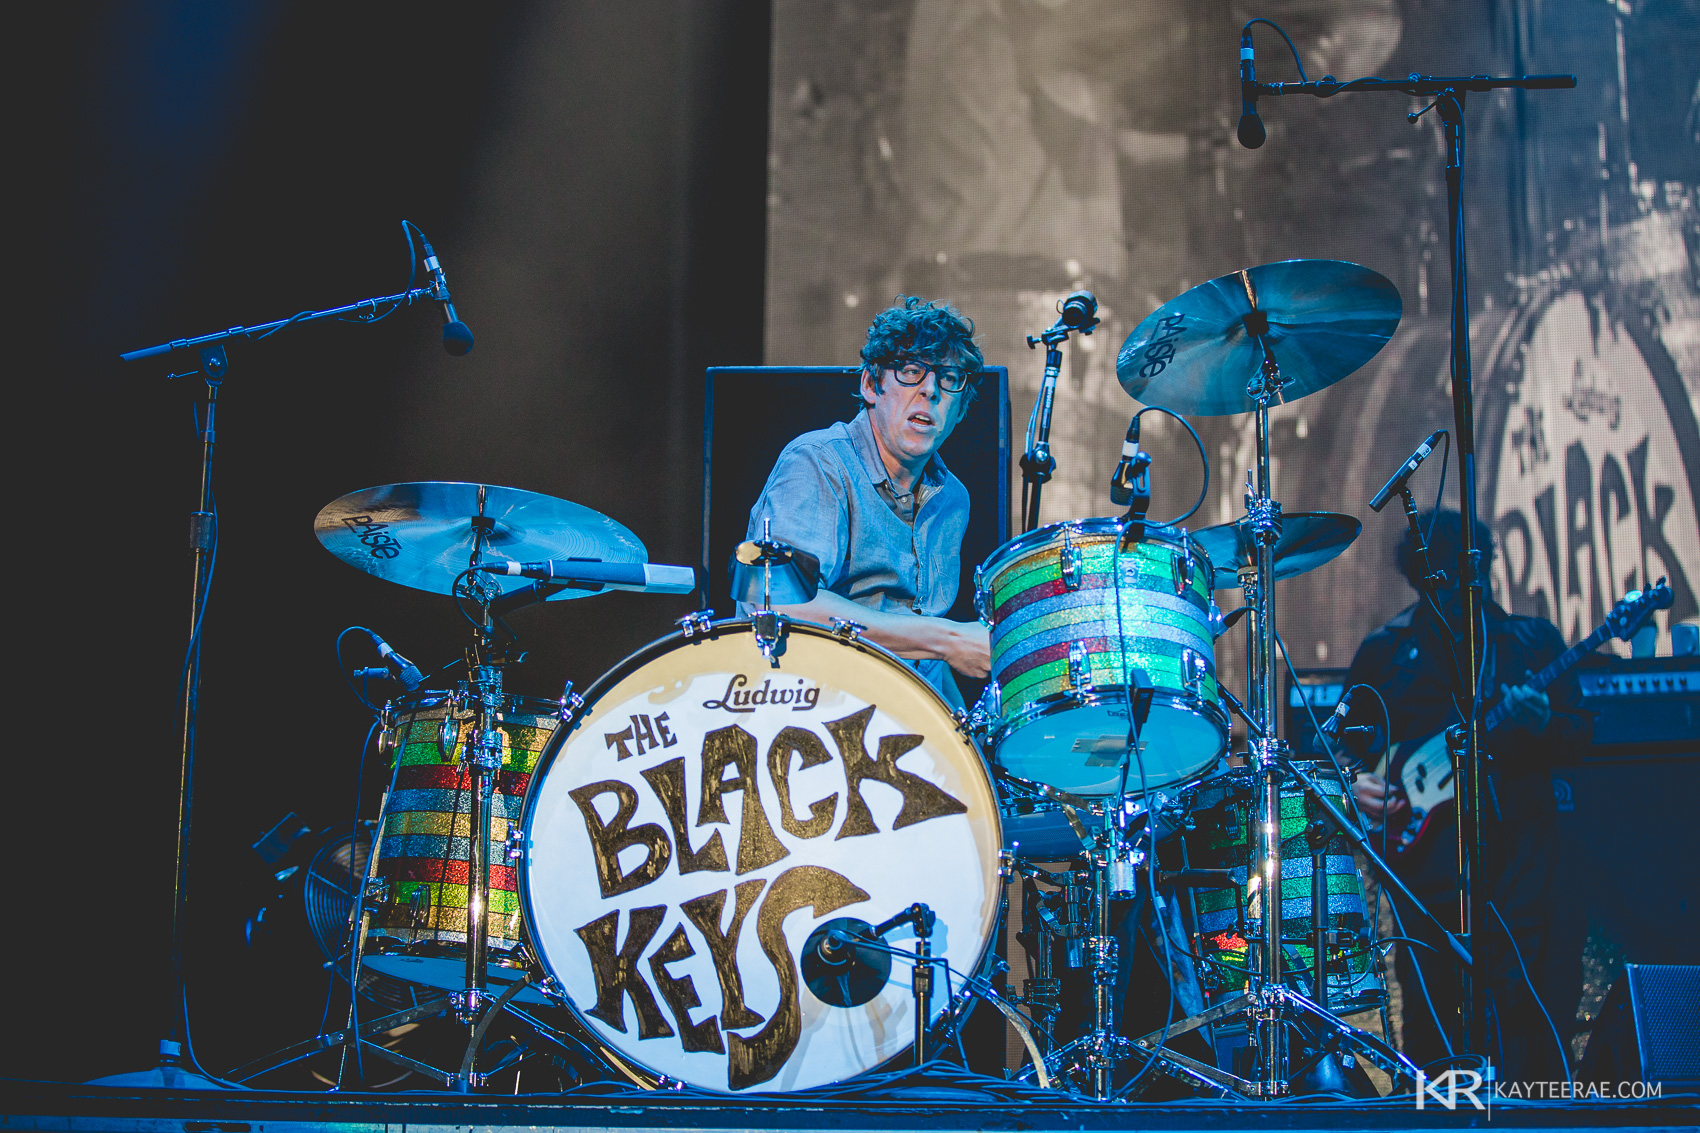 Patrick Carney // The Black Keys